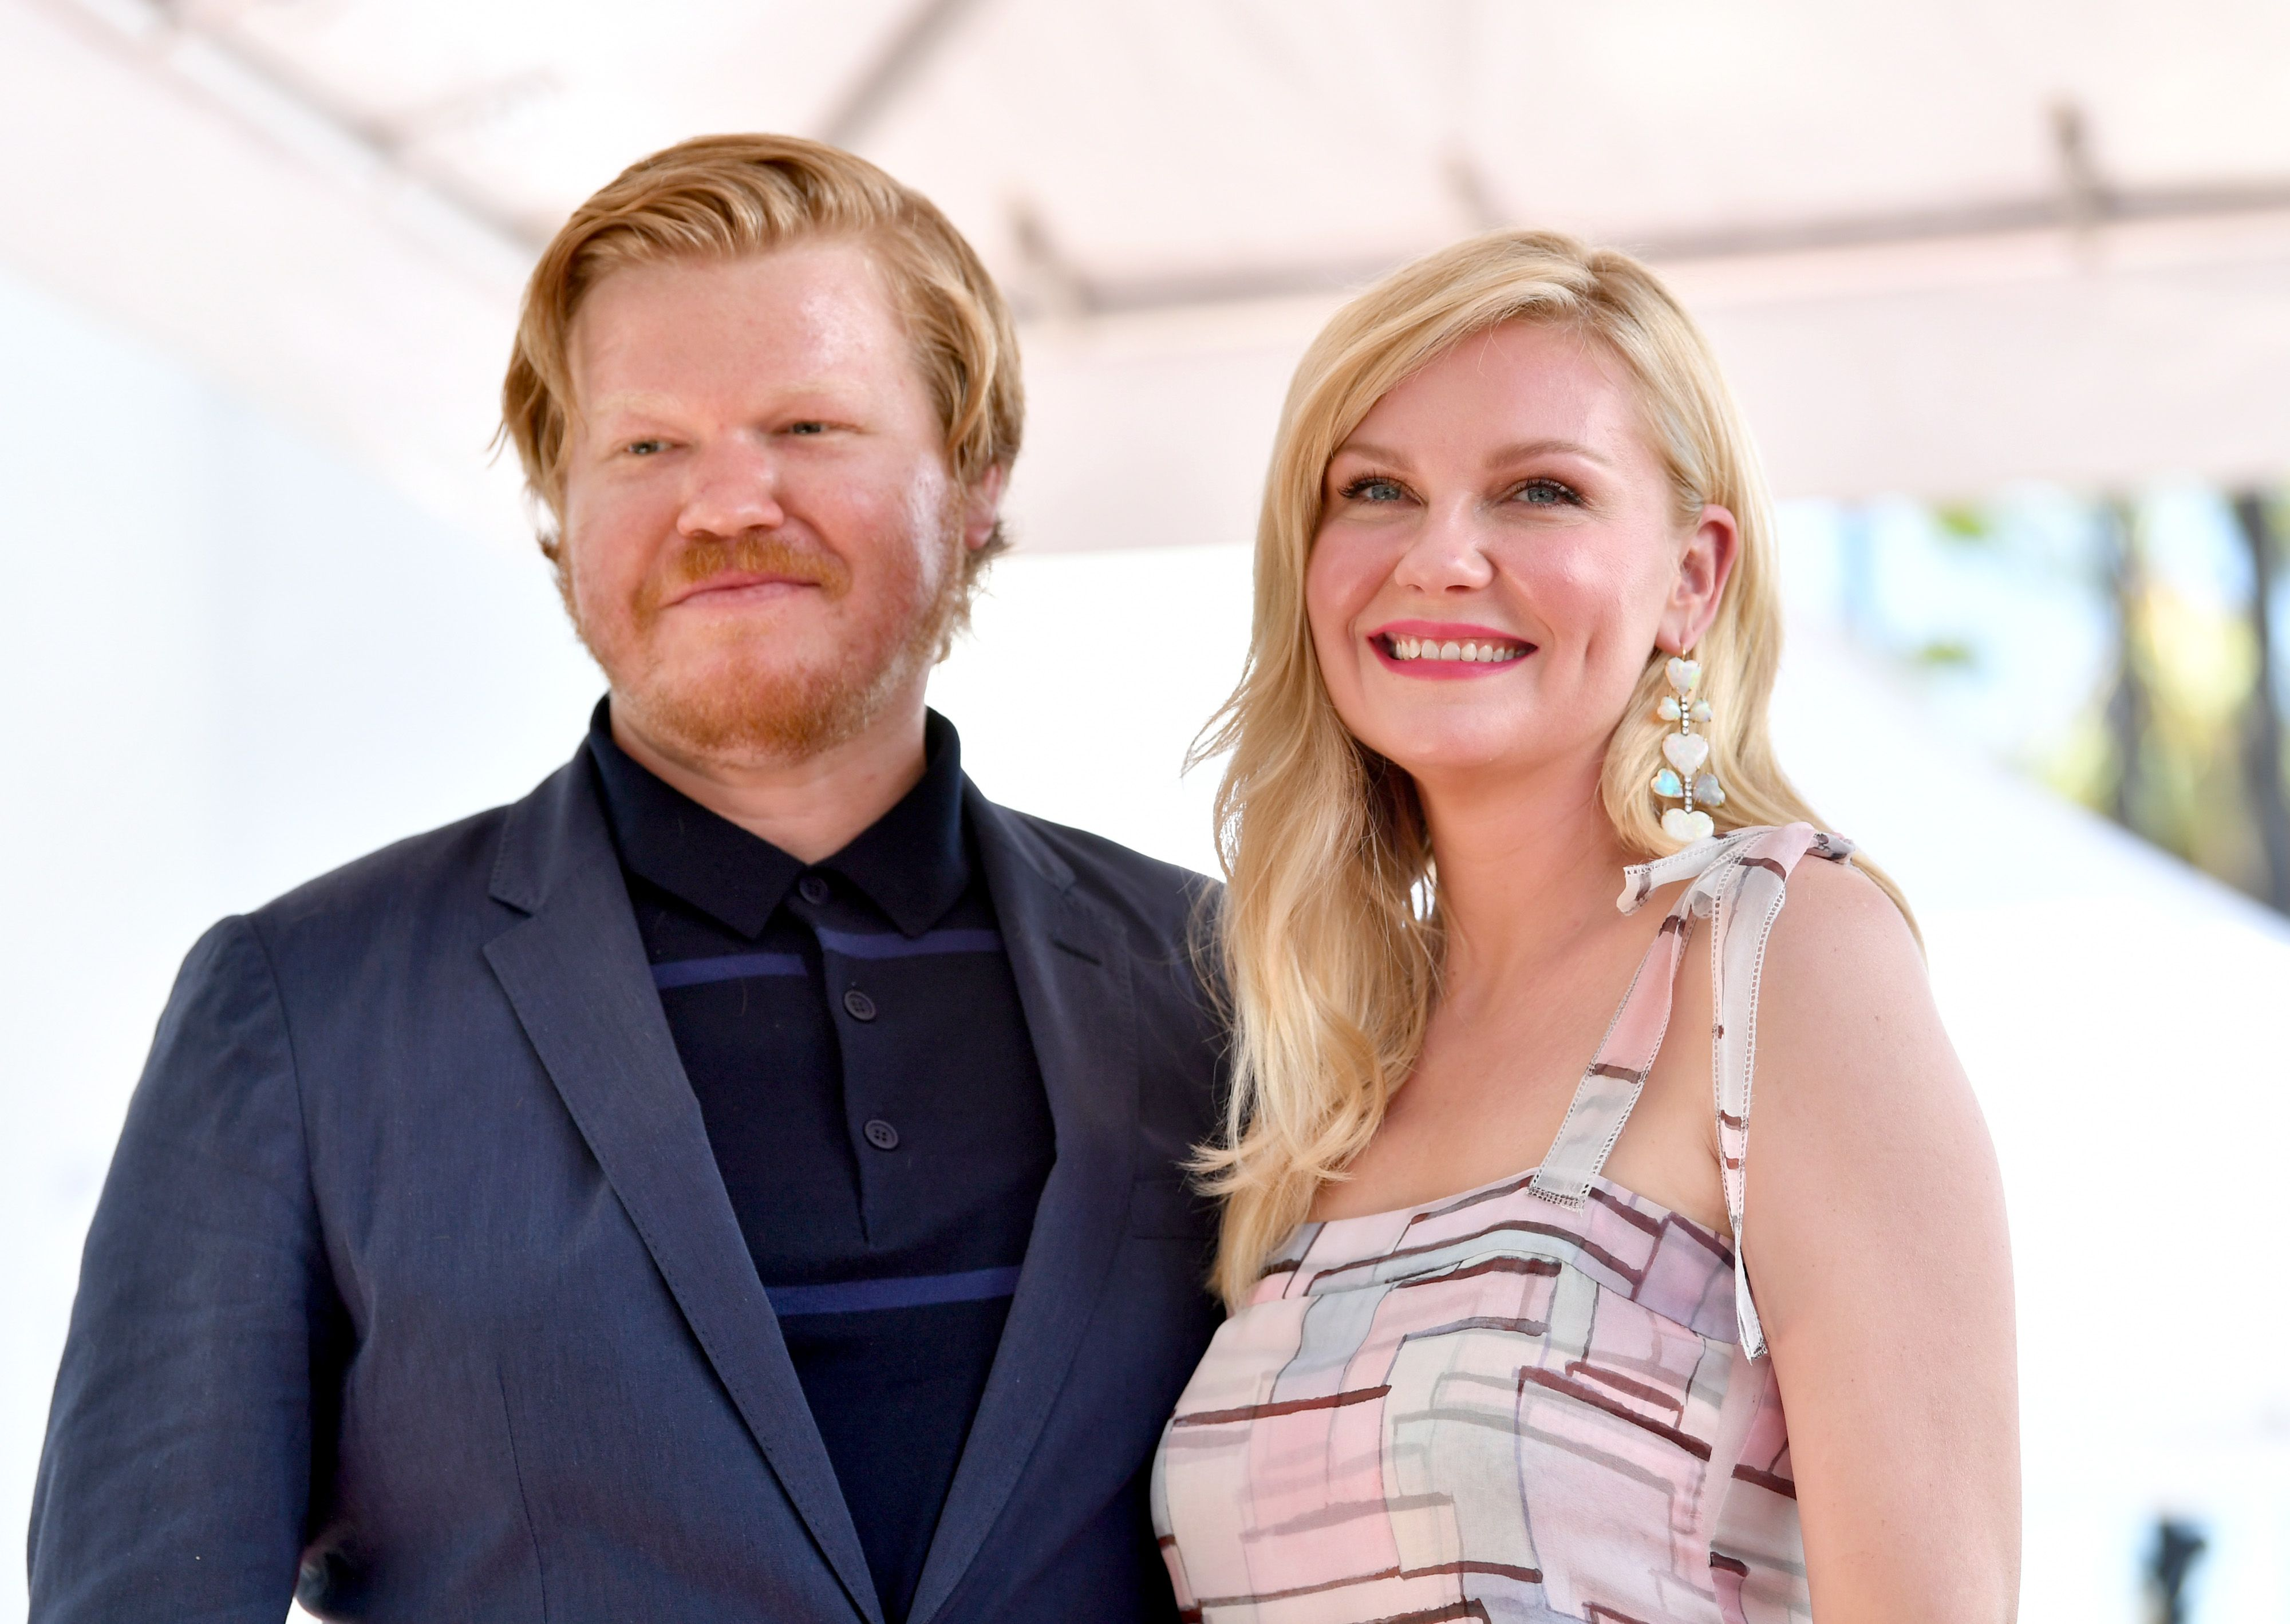 Jesse Plemons and Kirsten Dunst on the Hollywood Walk of Fame in 2019 in Hollywood, California | Source: Getty Images